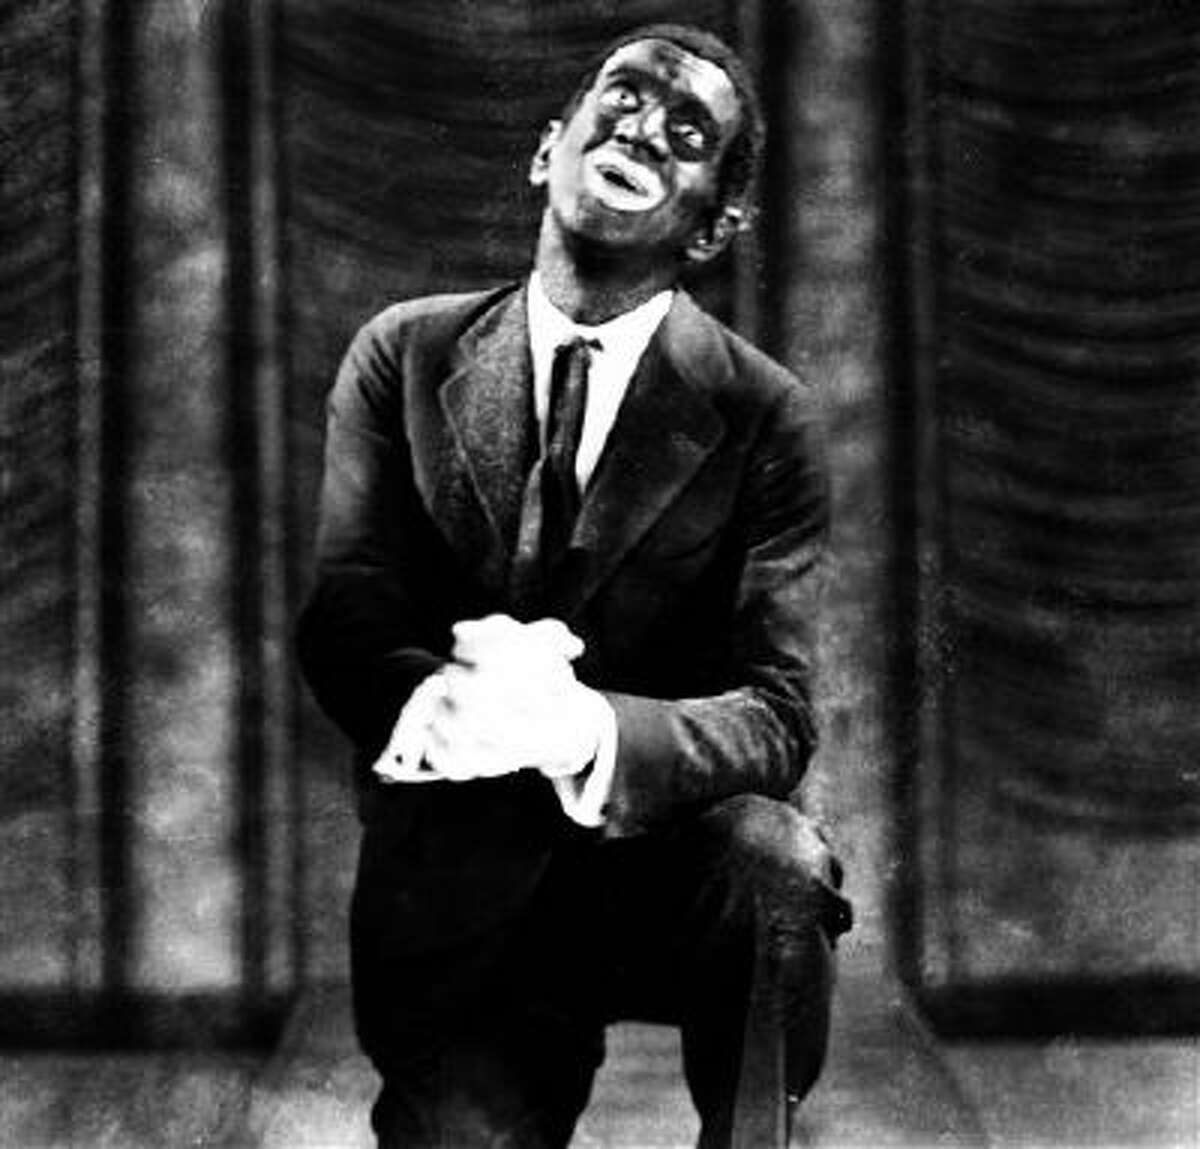 """This 1927 image originally released by Warner Bros., shows Al Jolson in blackface makeup in the movie """"The Jazz Singer."""" Historically, blackface emerged in the mid-19th century, representing a combination of put-down, fear and morbid fascination with black culture. Among the most prominent examples: Al Jolson and Eddie Cantor. Today, there?s a fine line between mockery and tribute."""